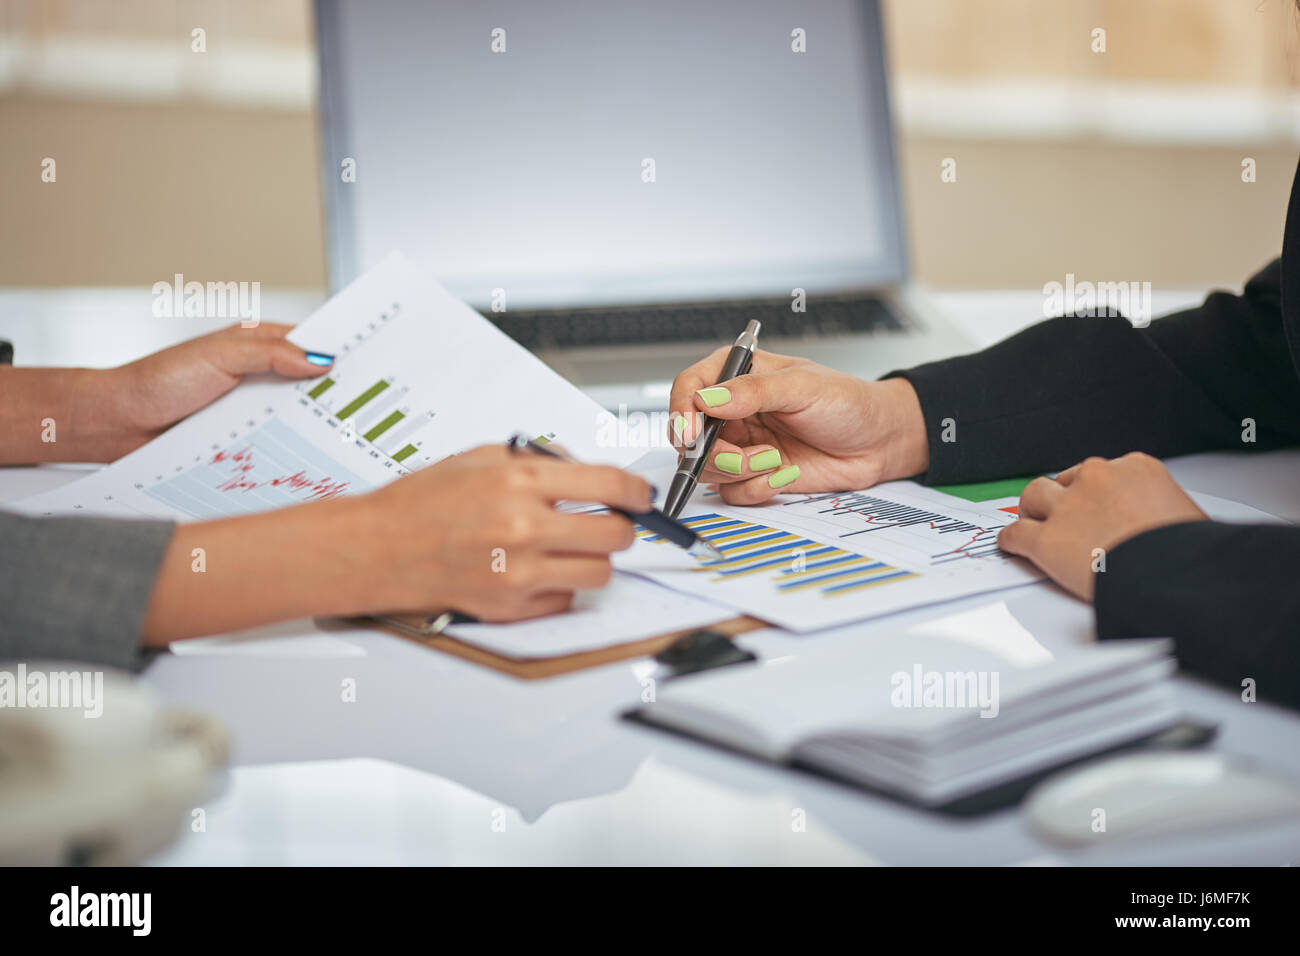 close up image of businesswomen discussing and consulting document - Stock Image